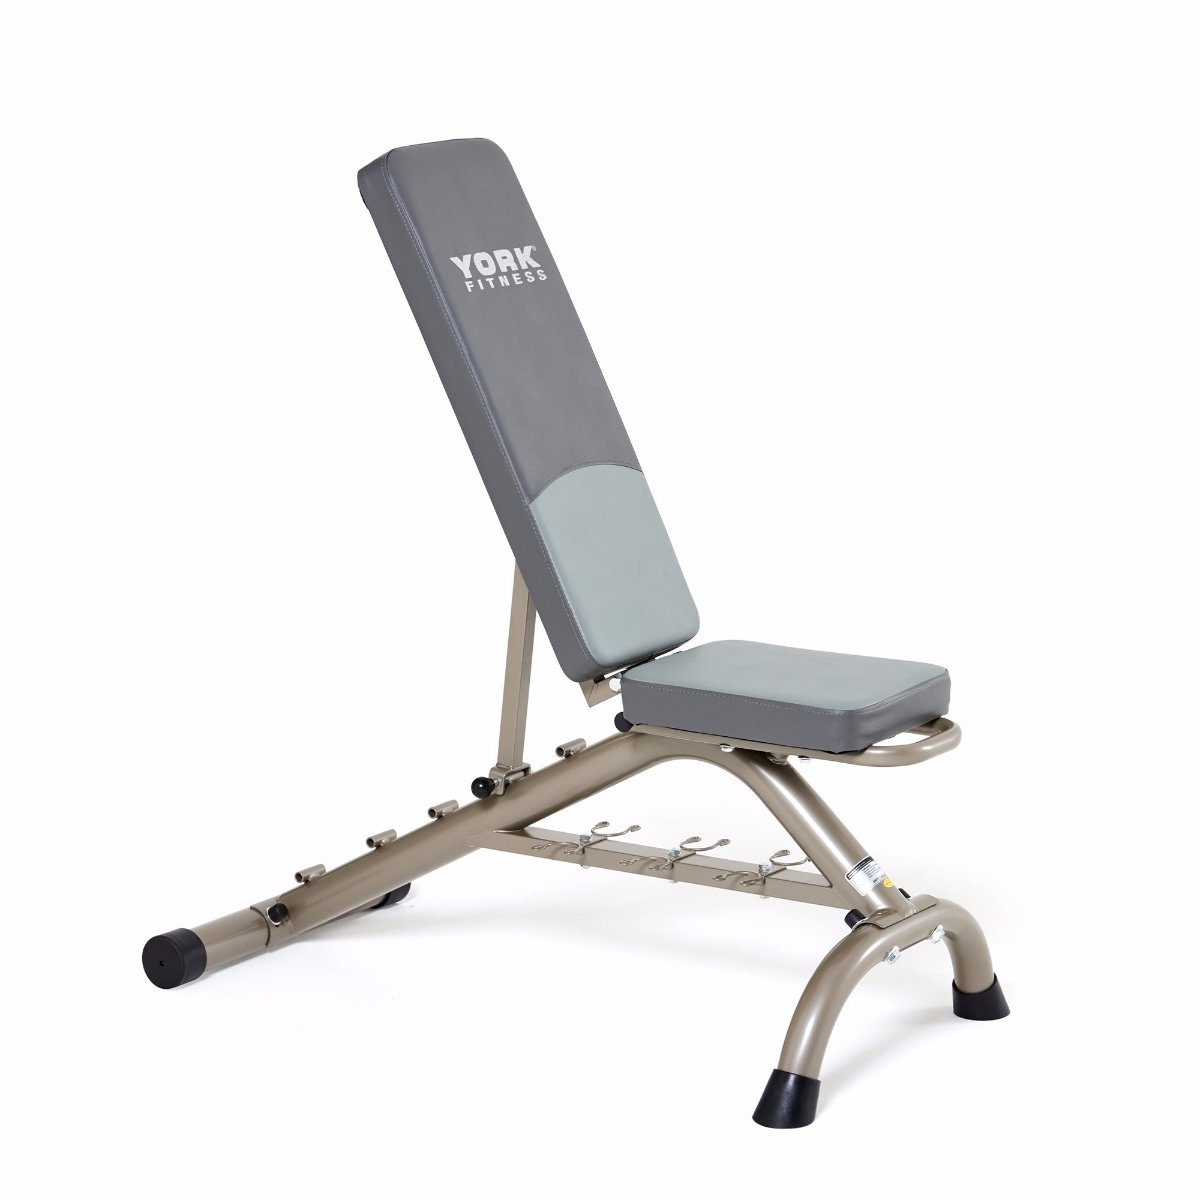 Adjustable Bench Press With Fitbell Storage York Barbell